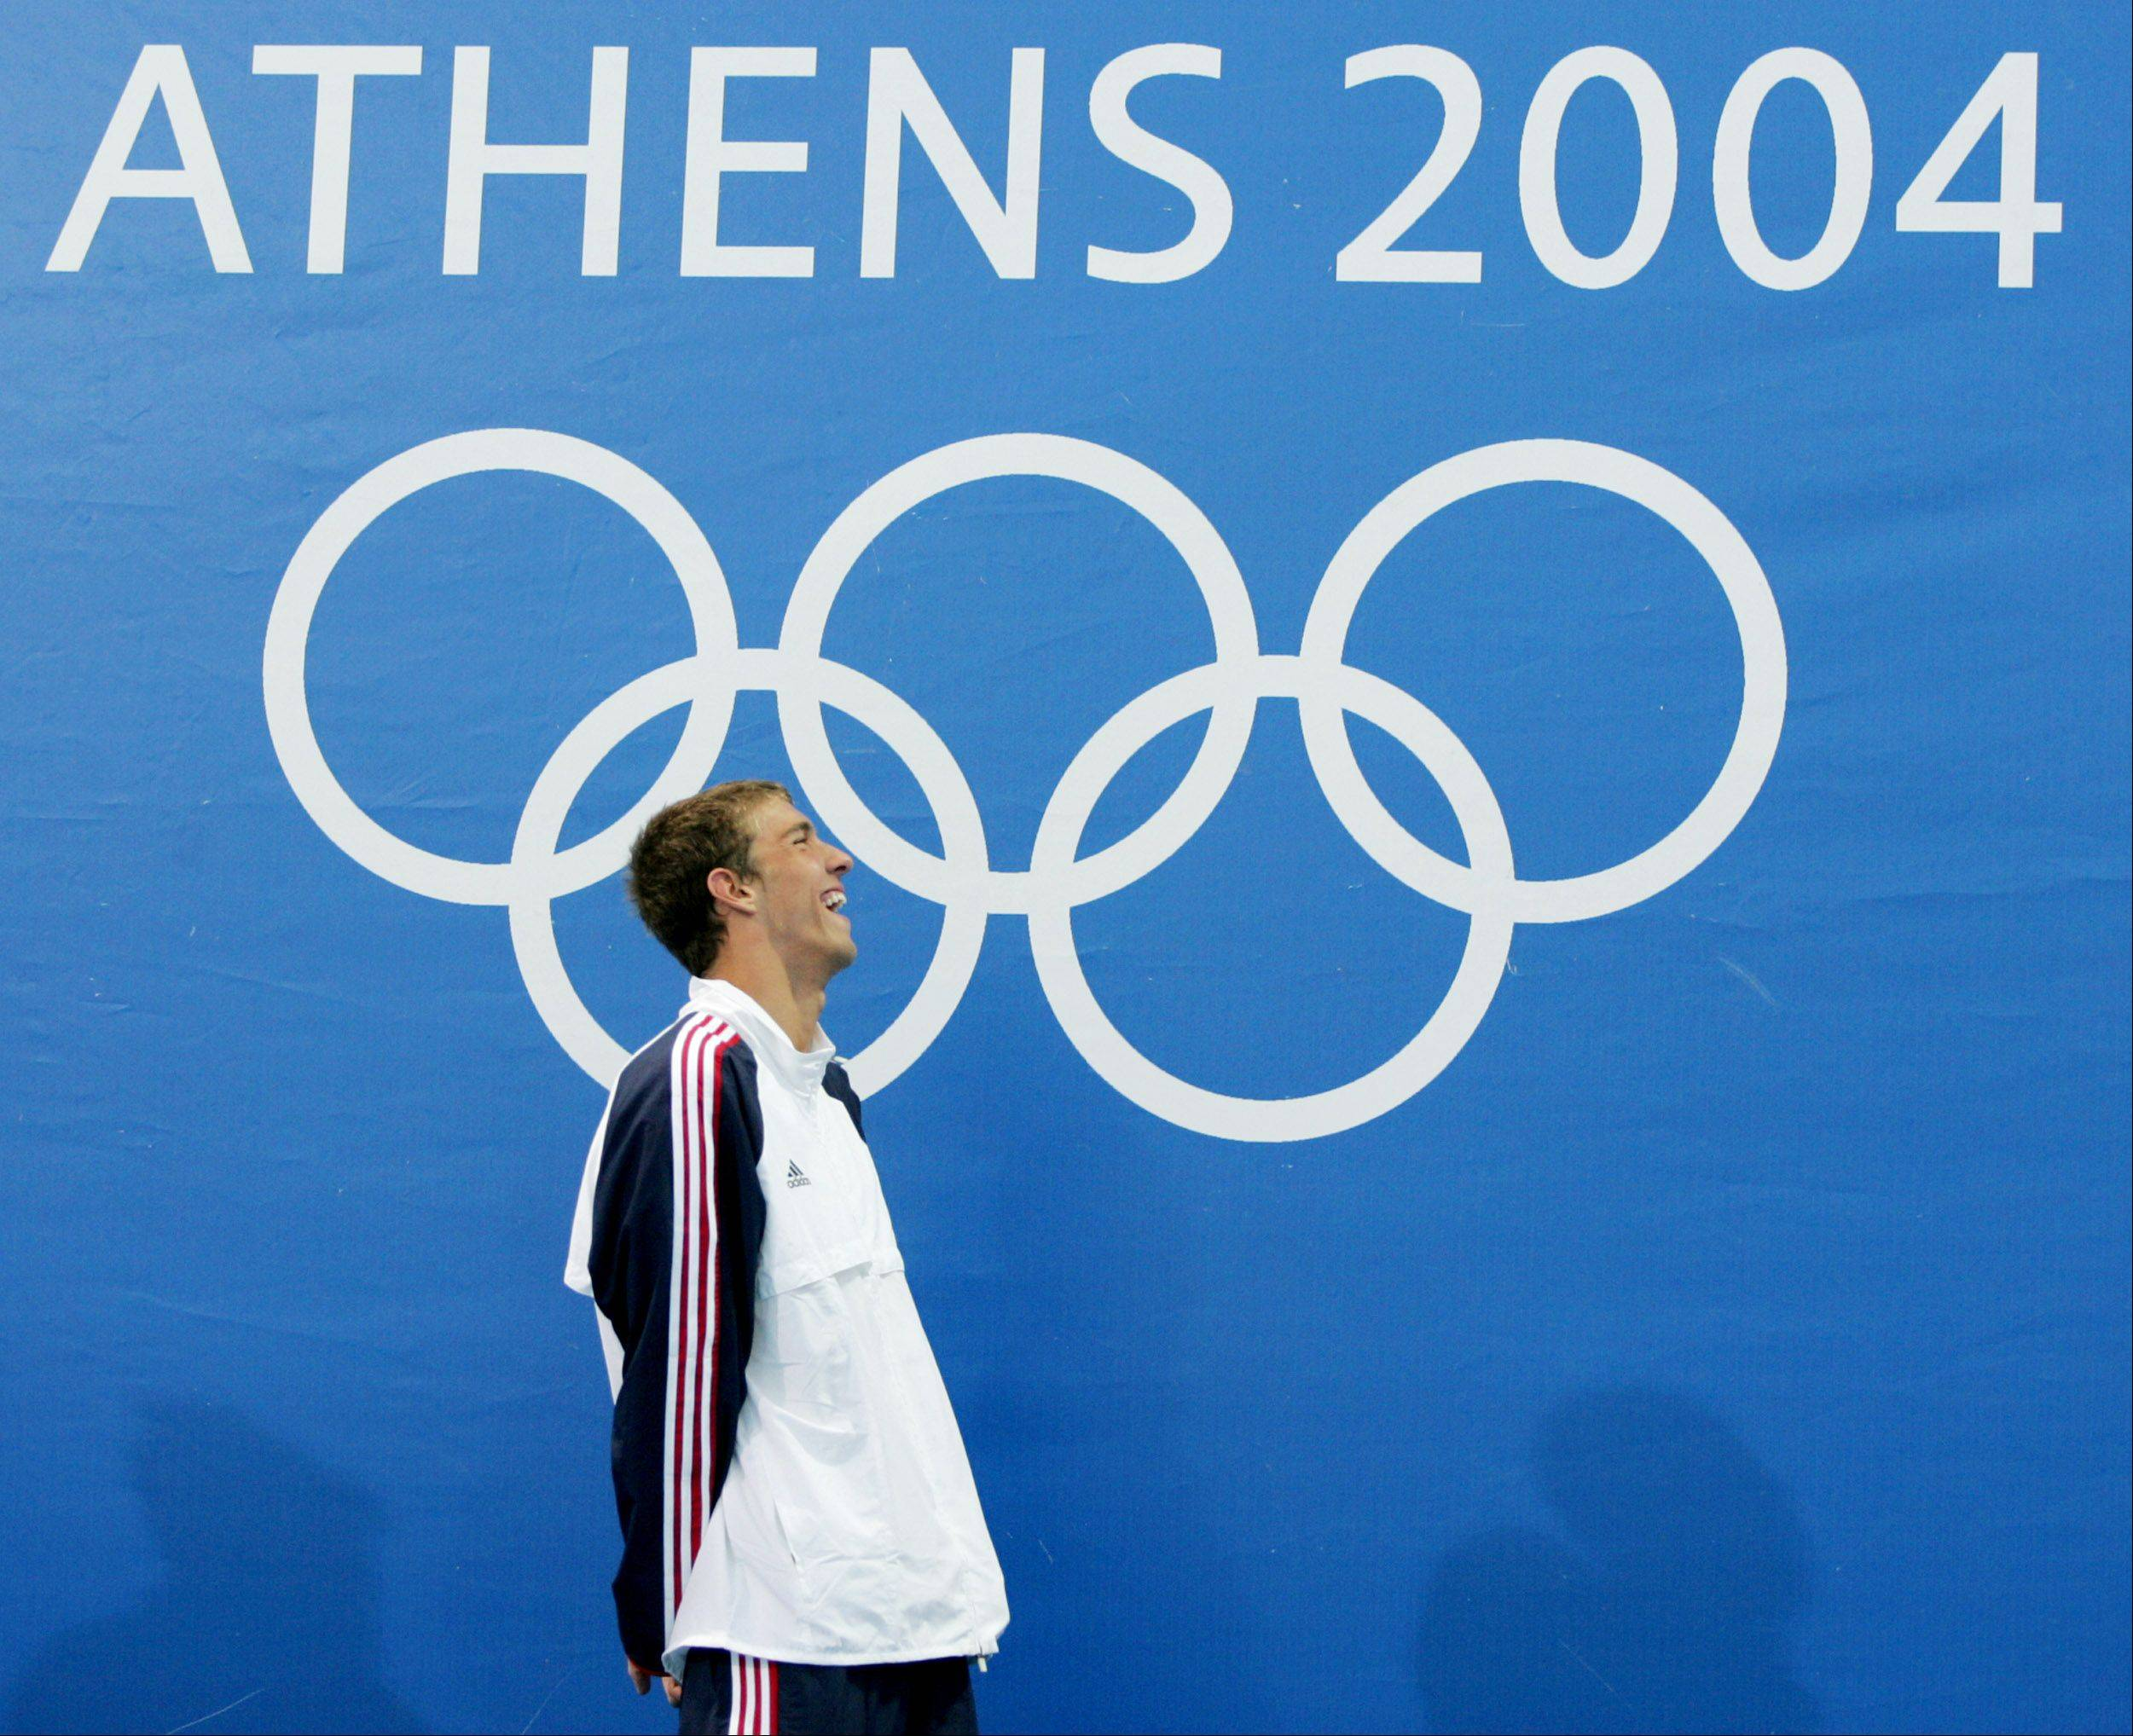 Michael Phelps wins the 400 m individual medley at the Olympic Games Saturday, Aug. 14, 2004 in Athens, Greece.